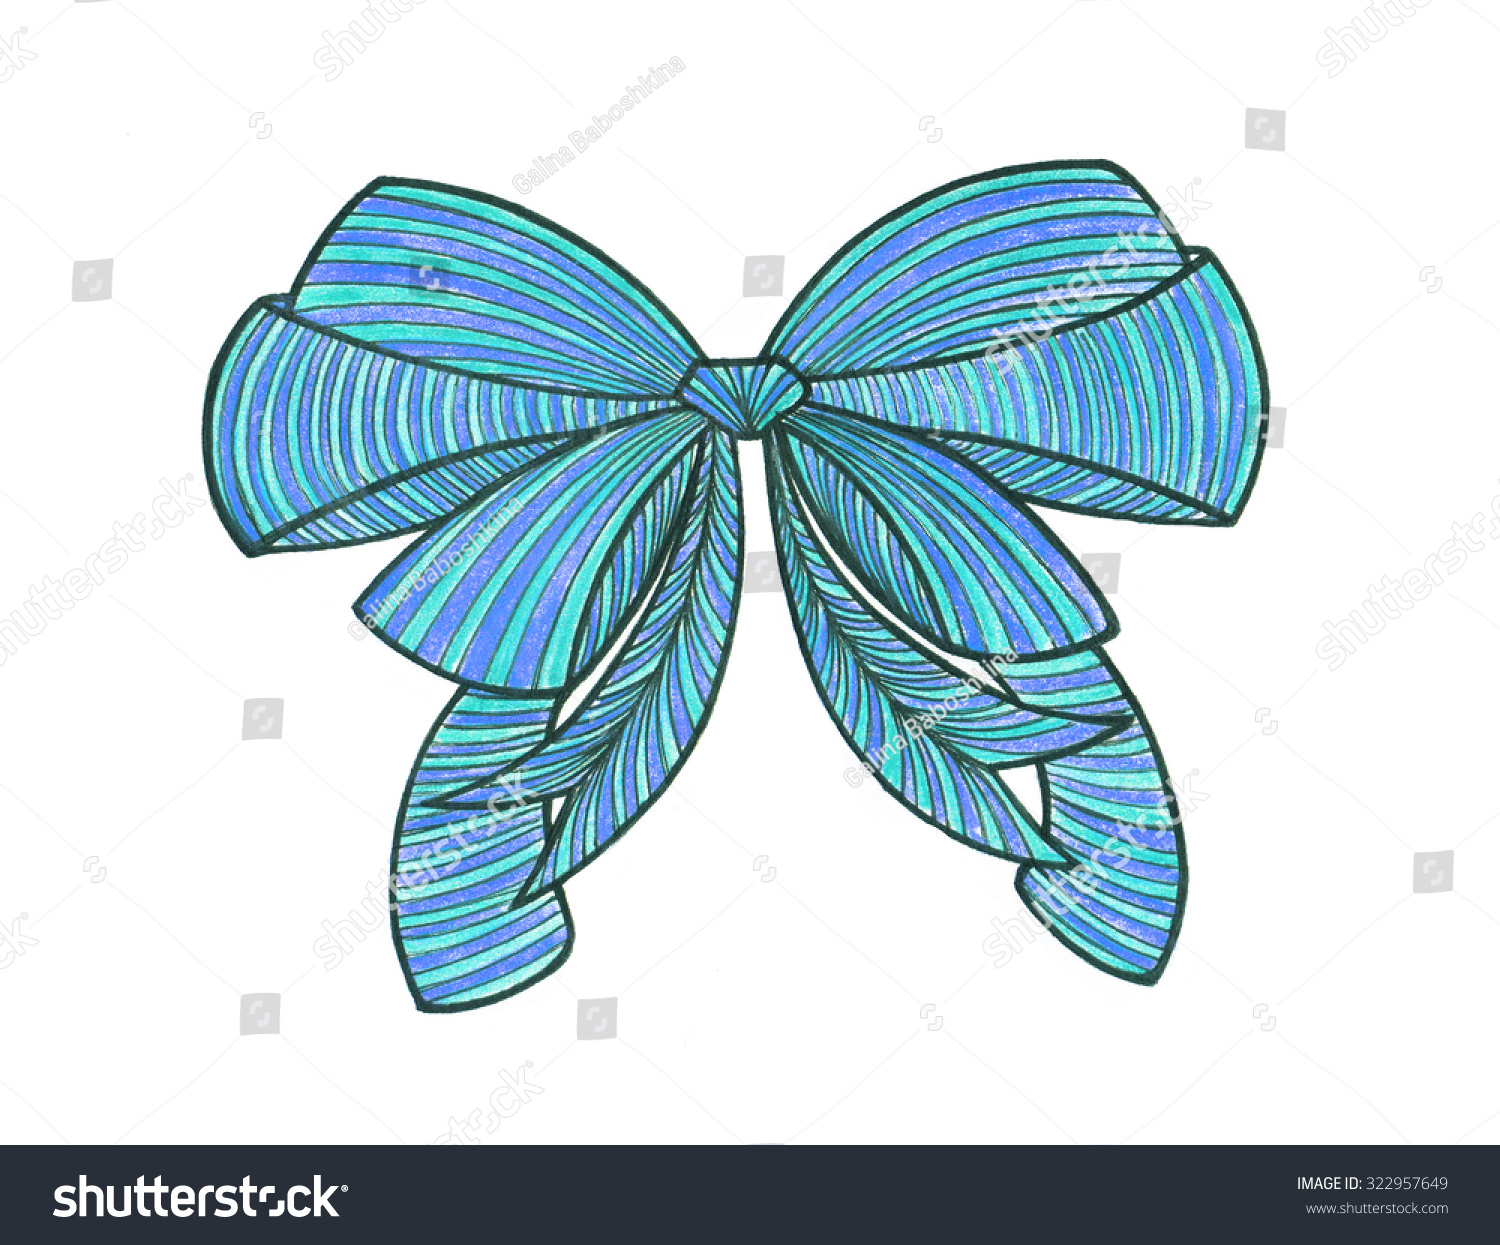 graphic bow drawing color pencils blue stock illustration royalty